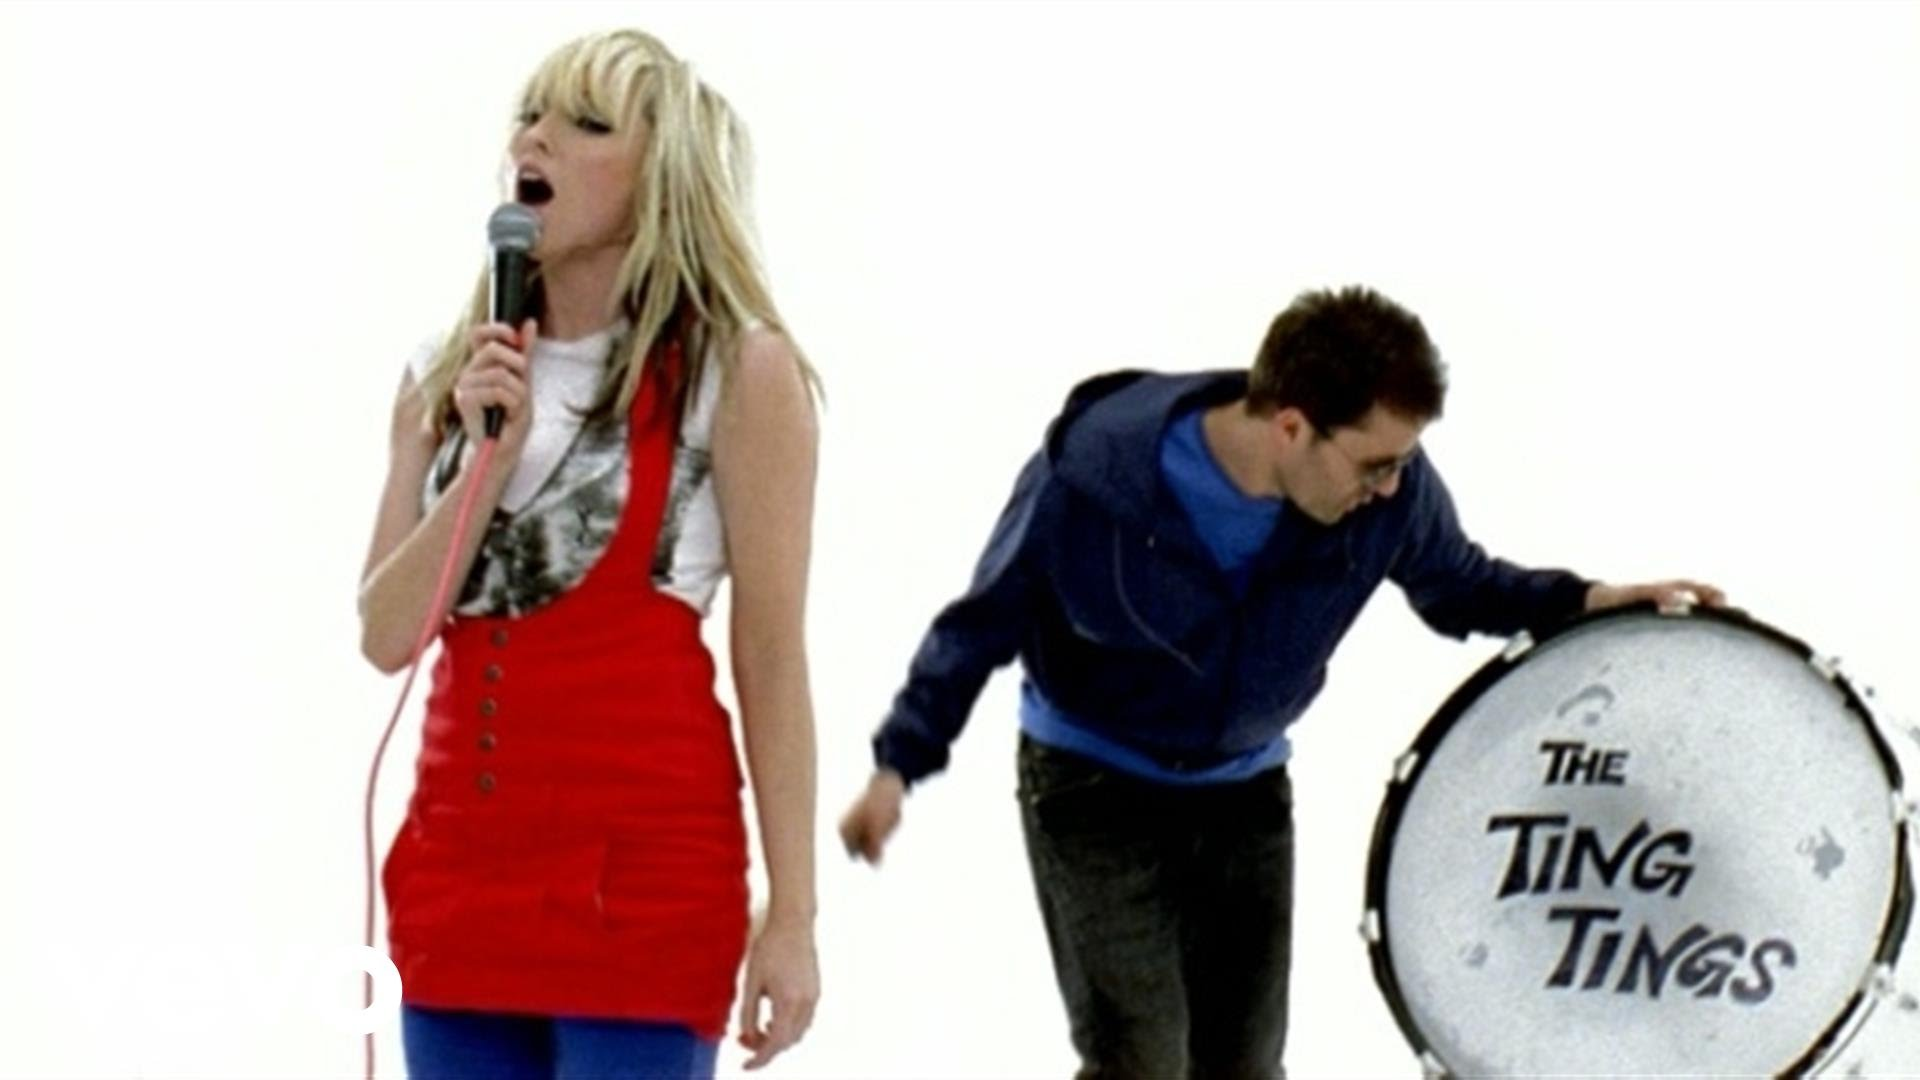 The Ting Tings – That's Not My Name